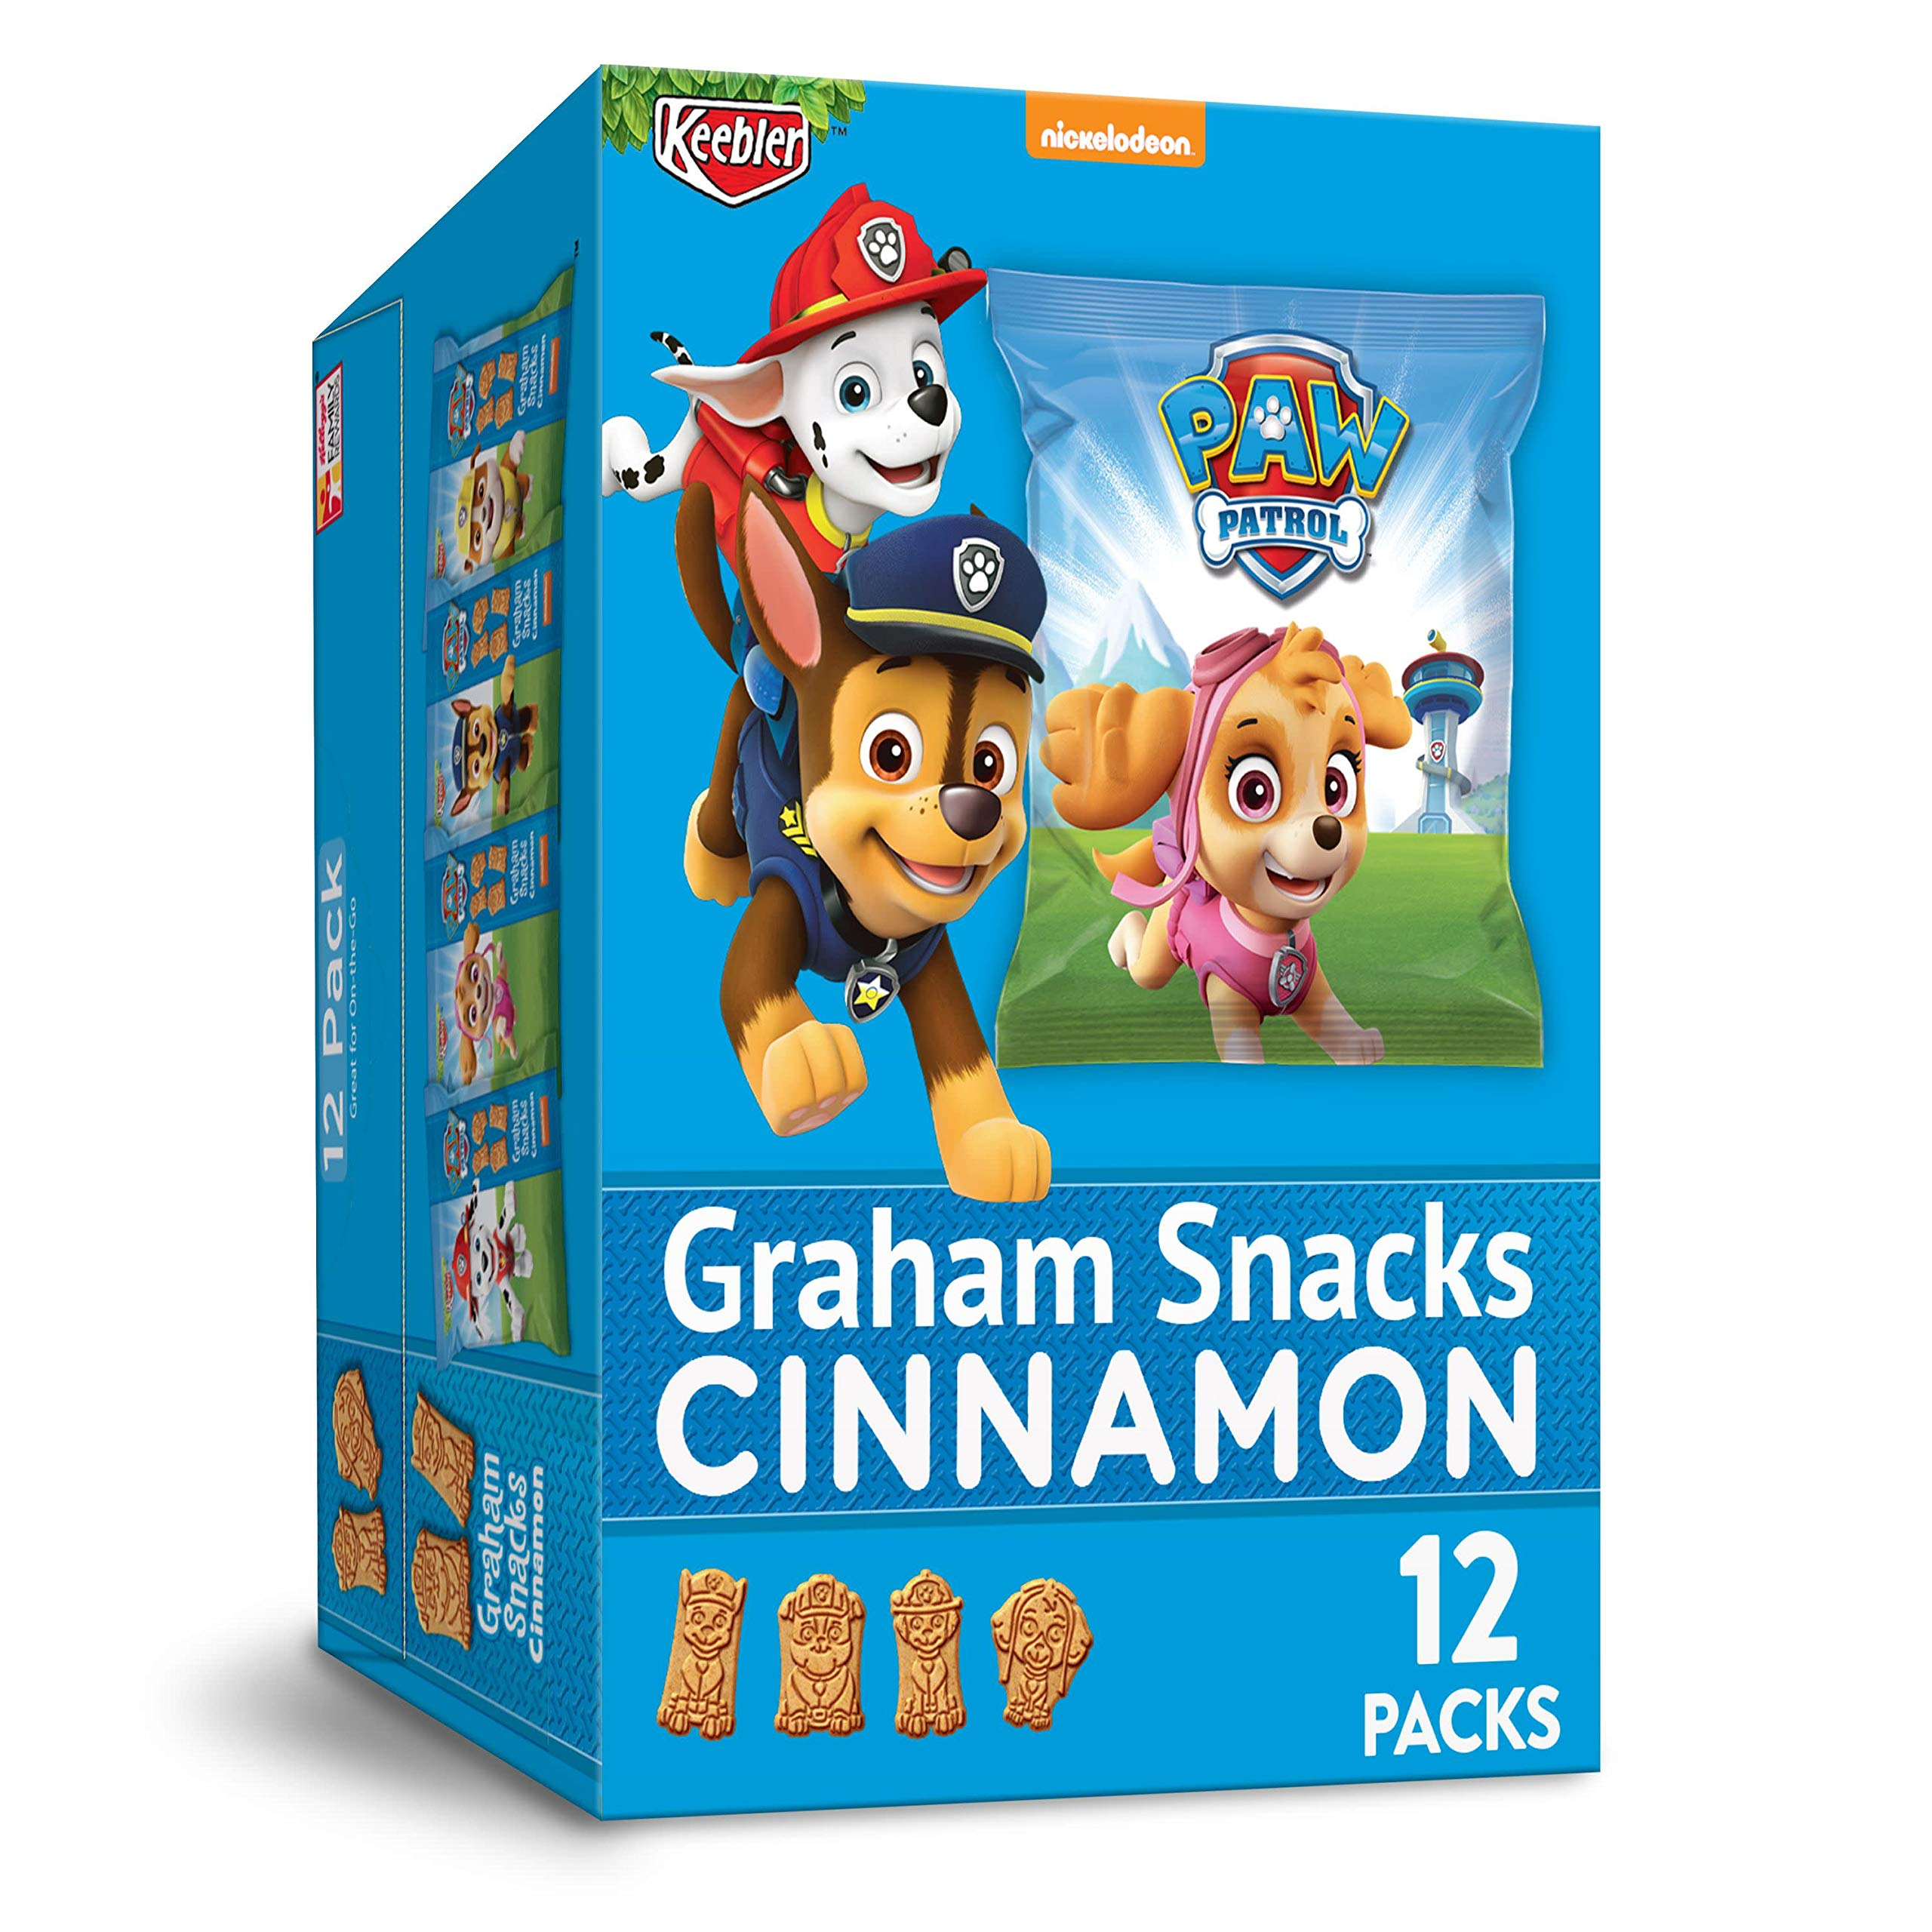 Keebler PAW Patrol, Graham Snacks, Cinnamon, Great for On-the-Go, 12.7oz Caddy(12 Count)